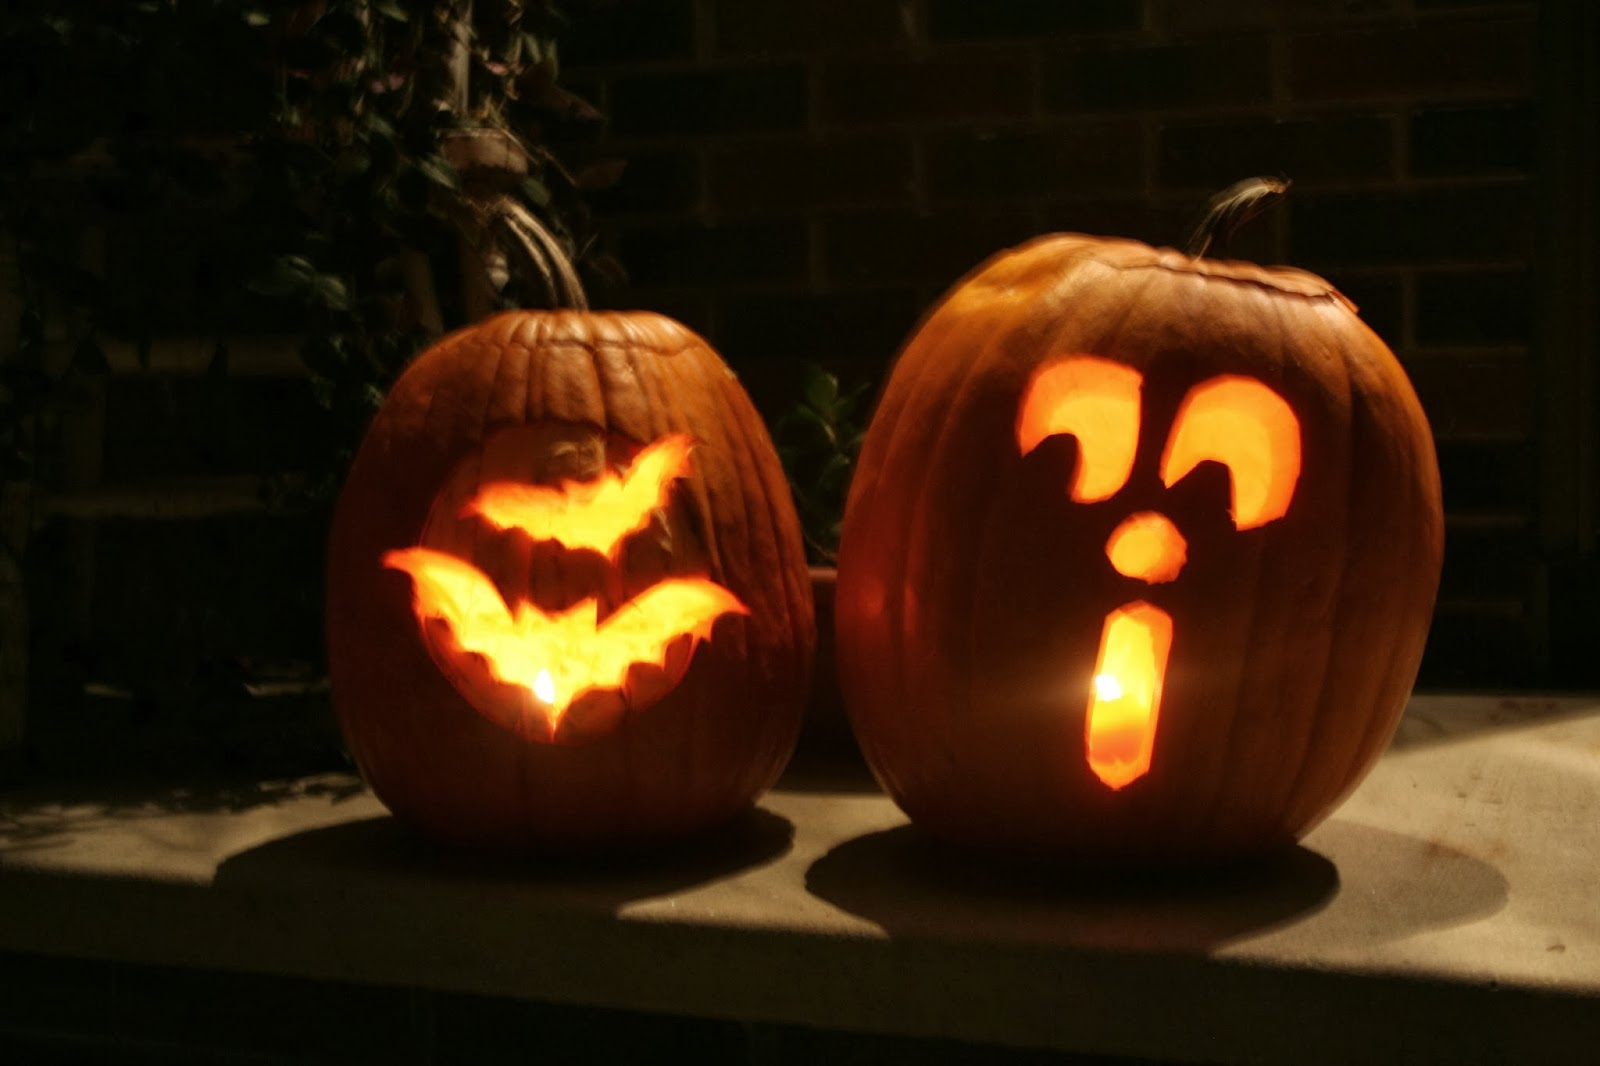 Pumpkin carving ideas for halloween 2017 jack o lantern Pumpkin carving designs photos